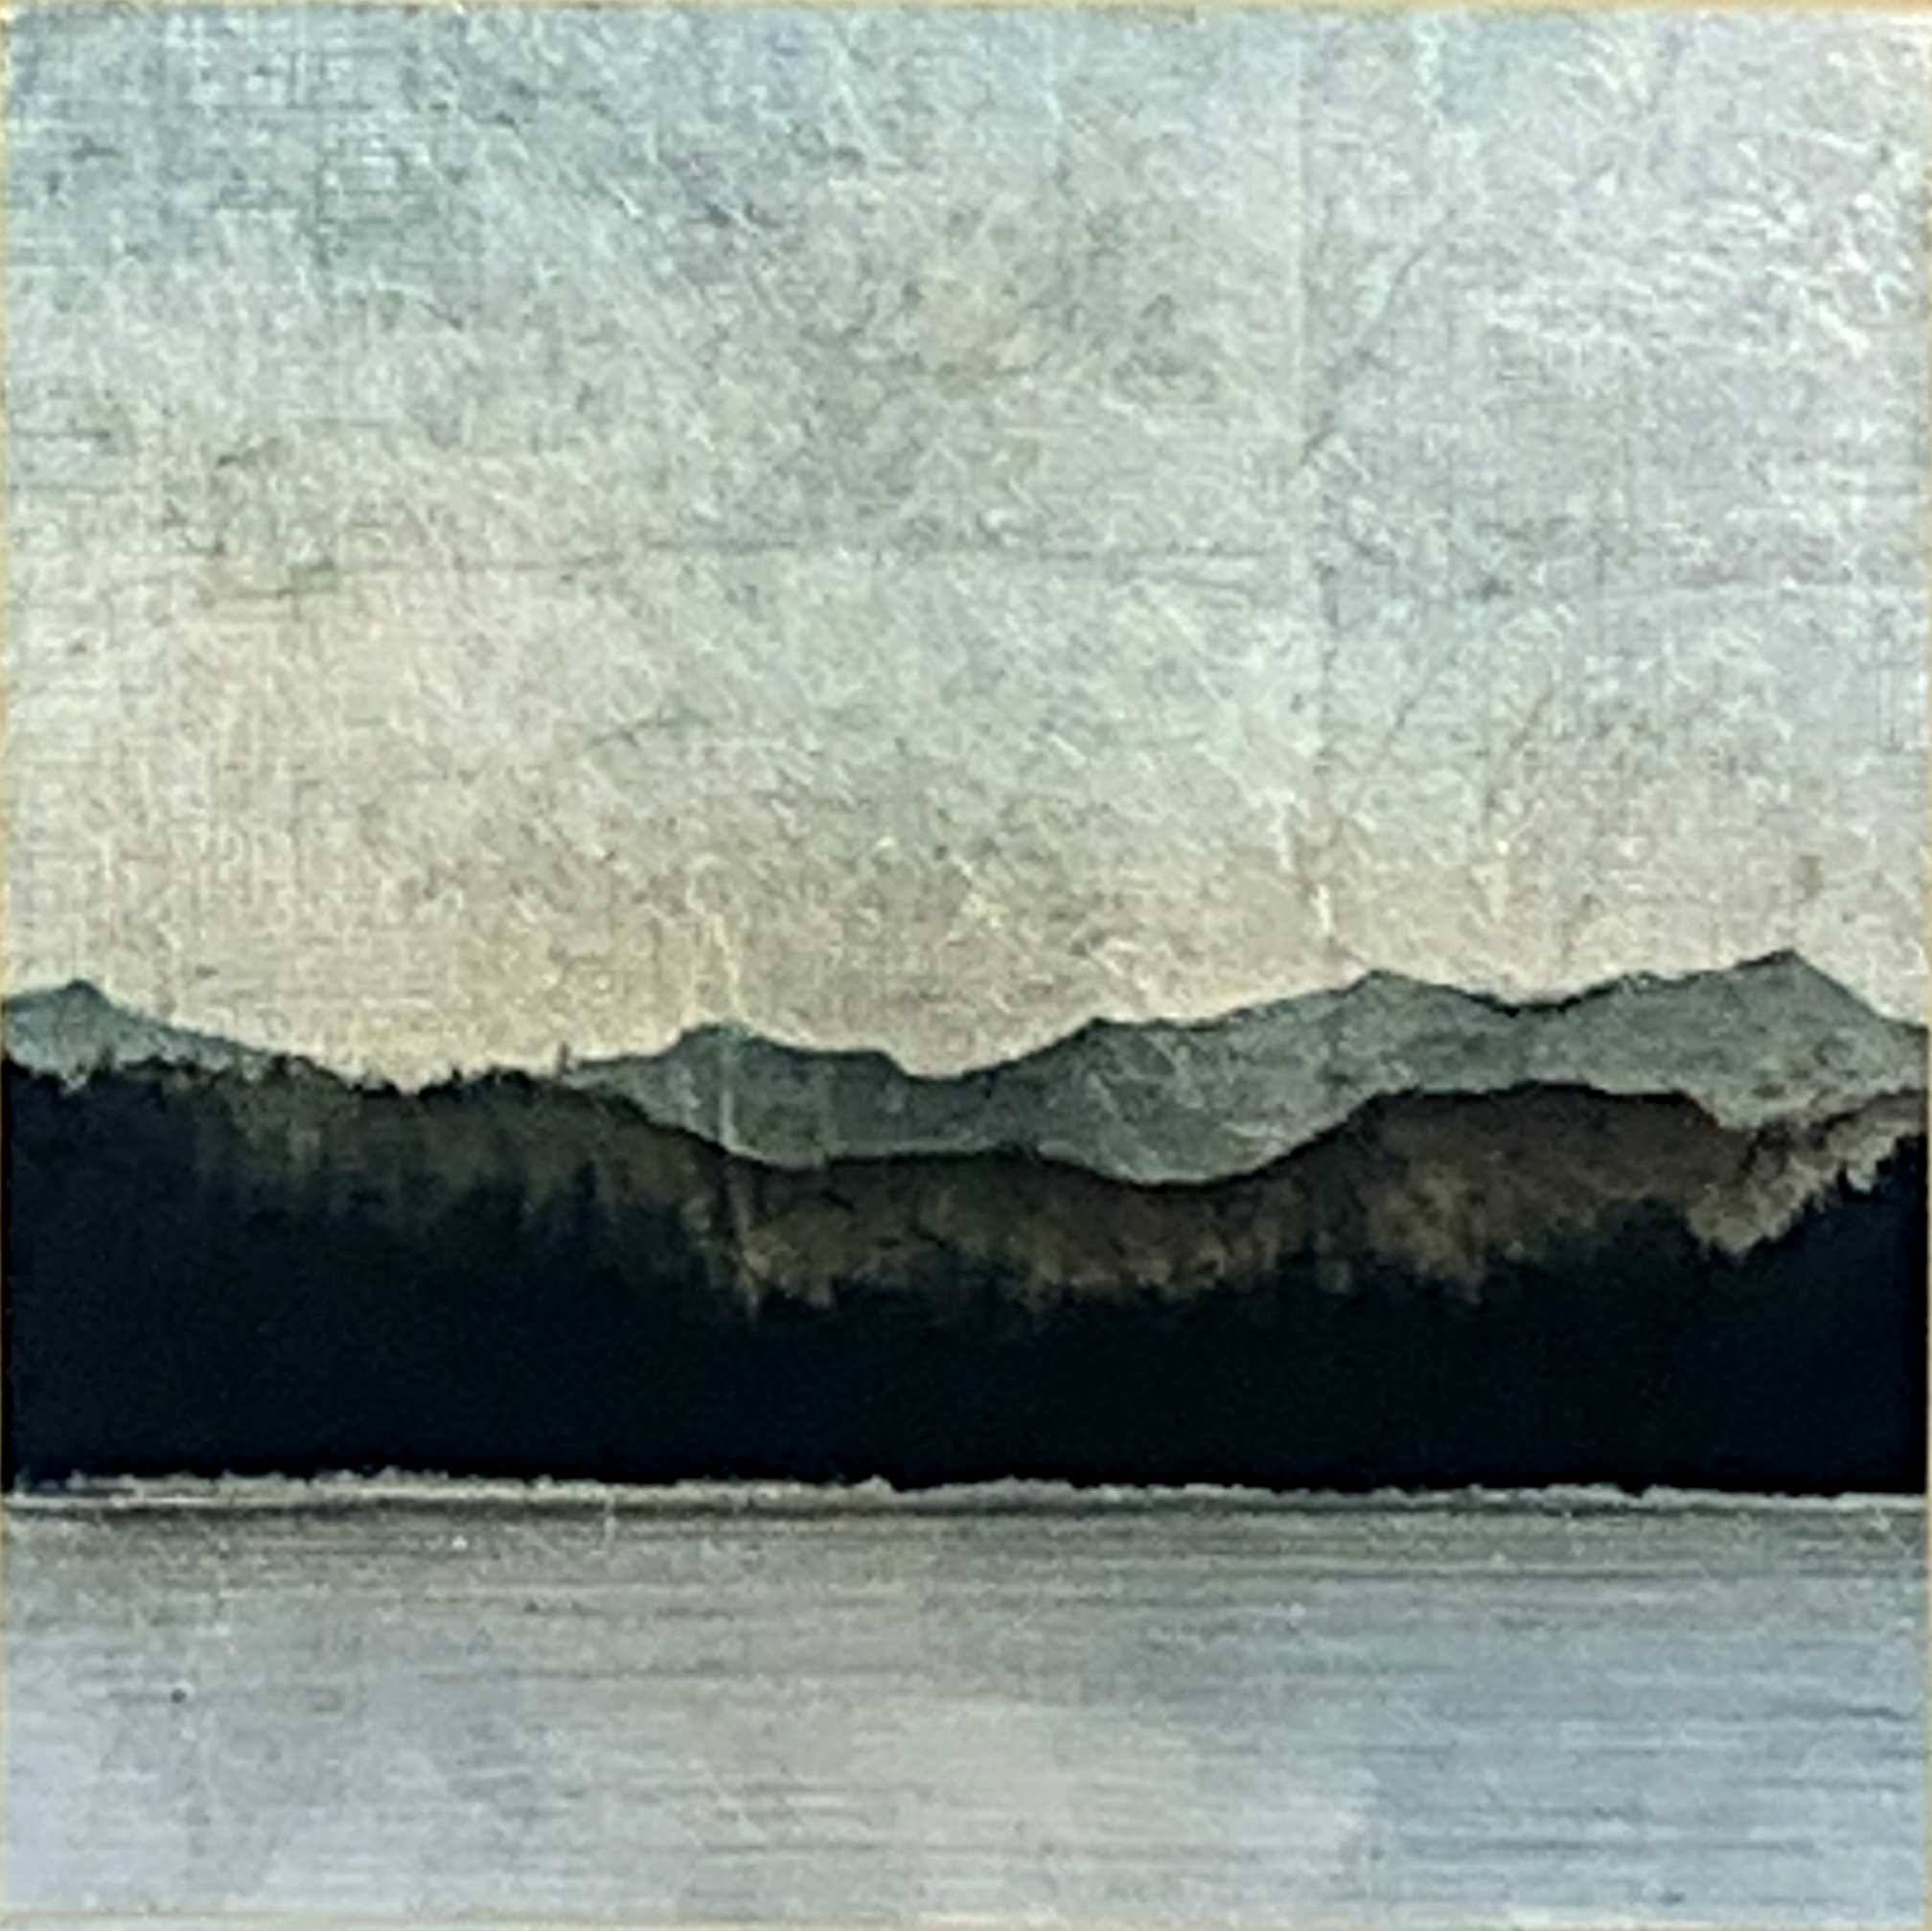 181, mixed media landscape painting by David Graff | Effusion Art Gallery + Cast Glass Studio, Invermere BC